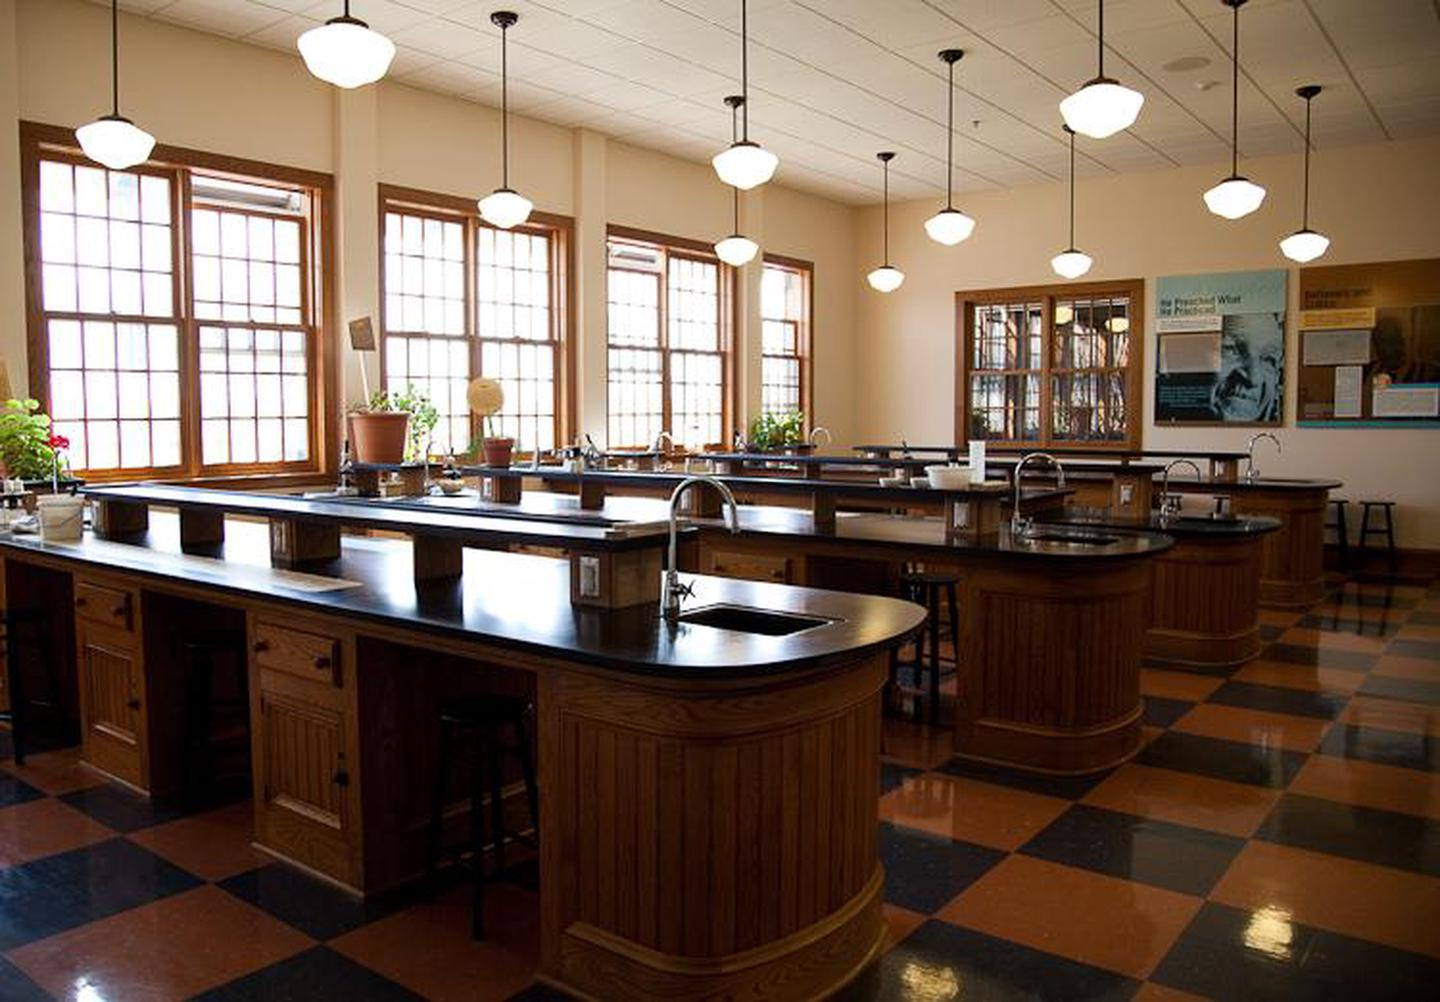 George Washington Carver NM Science ClassroomGeorge Washington Carver NM science classroom modeled after one of the George Washington Carver's lab at Tuskegee Institute.